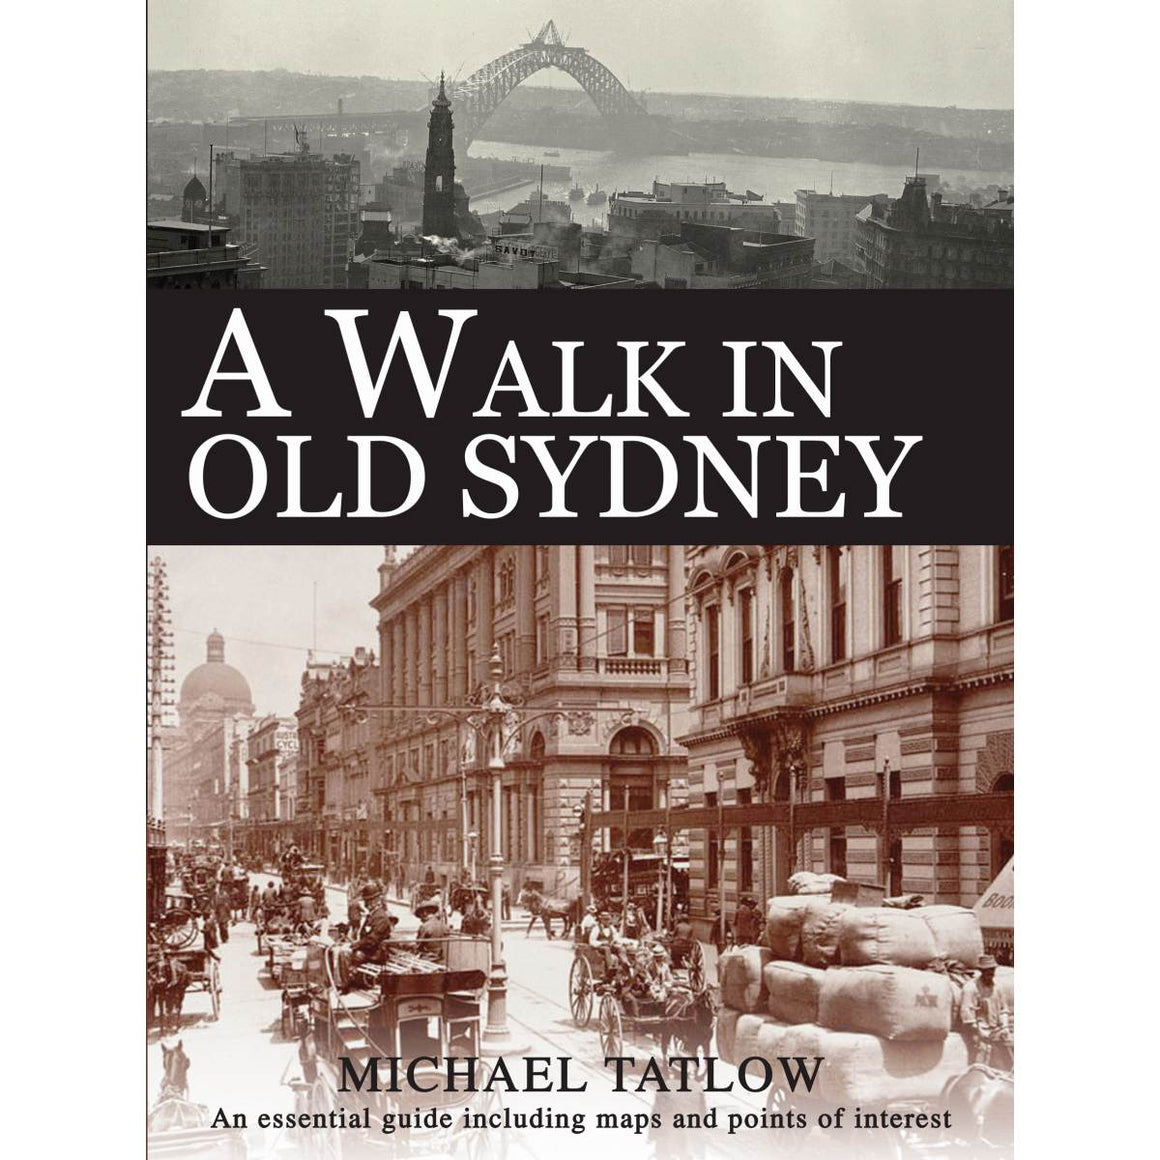 A Walk In Old Sydney | Author: Michael Tatlow